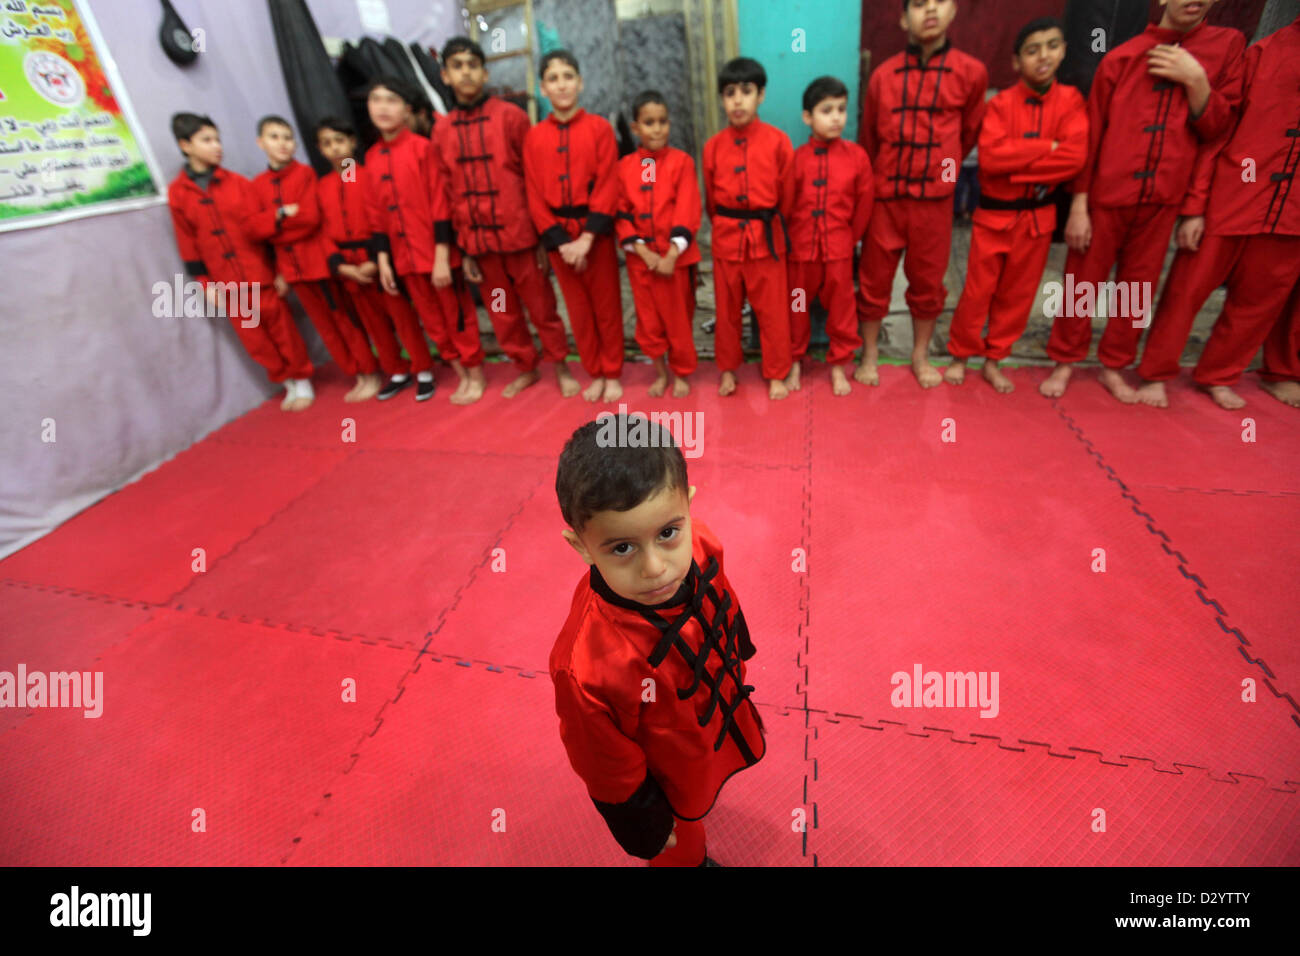 2, 2013 - Gaza City, Gaza Strip, Palestinian Territory - Palestinian  children practise Kungfu during martial arts training class at the Red  Dragon School in ...